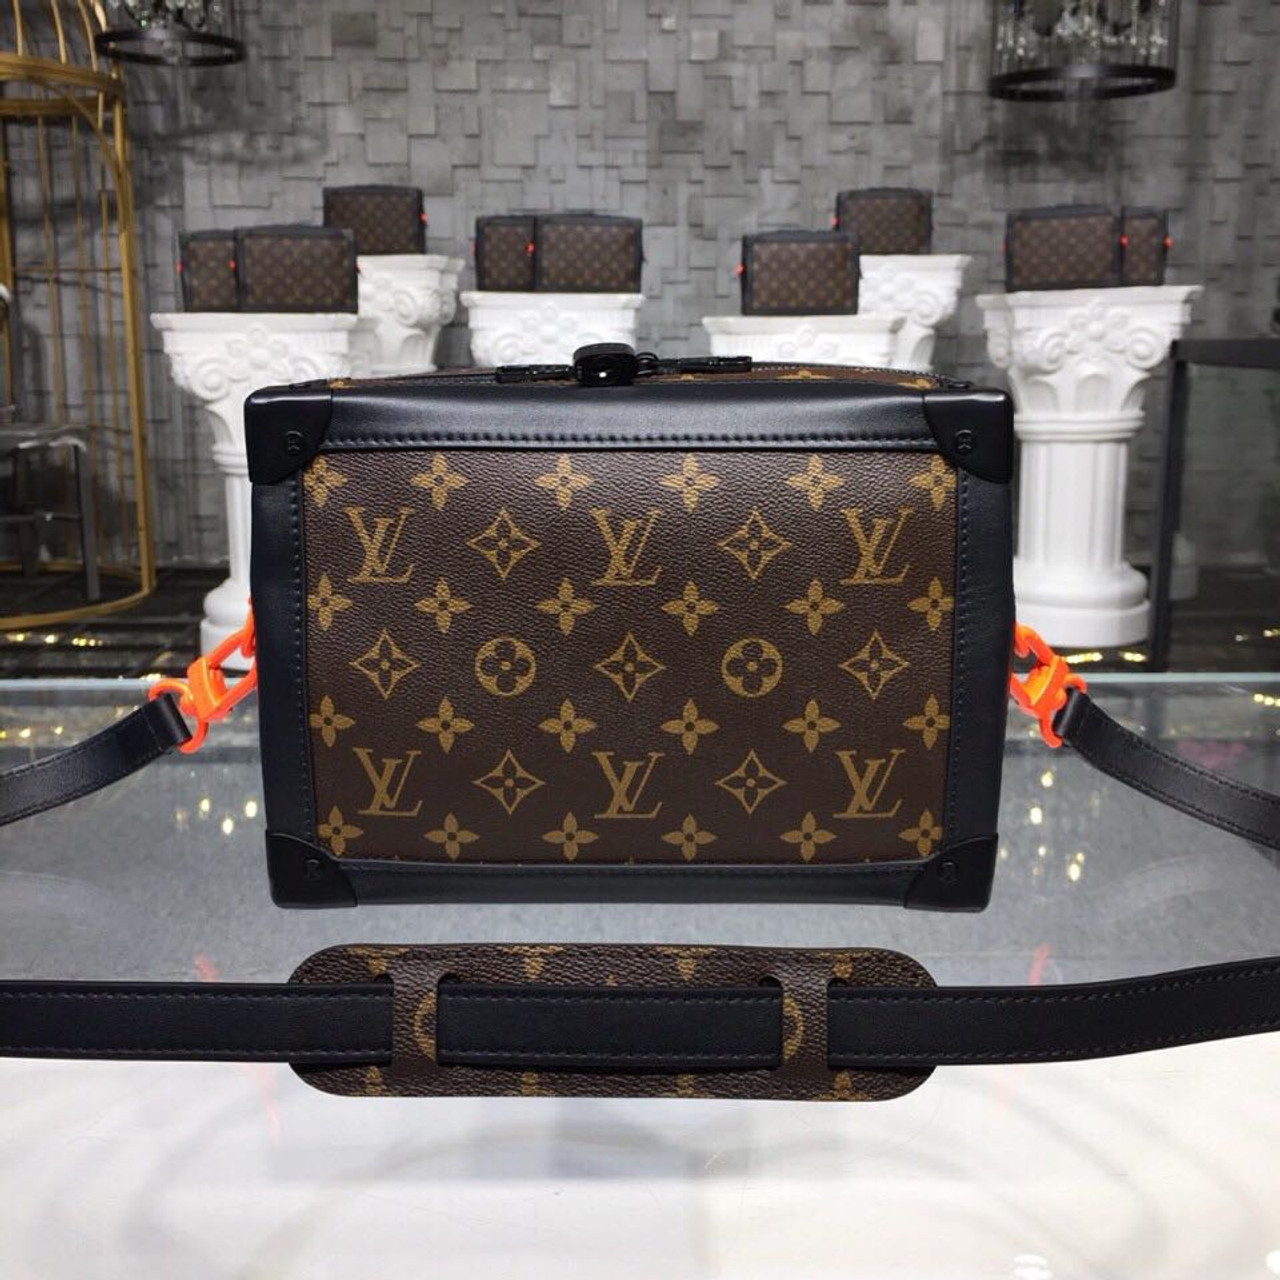 0124aeb58c0f Louis Vuitton Soft Trunk Mini Bag Monogram Canvas Fall Winter 2018  Collection M44427